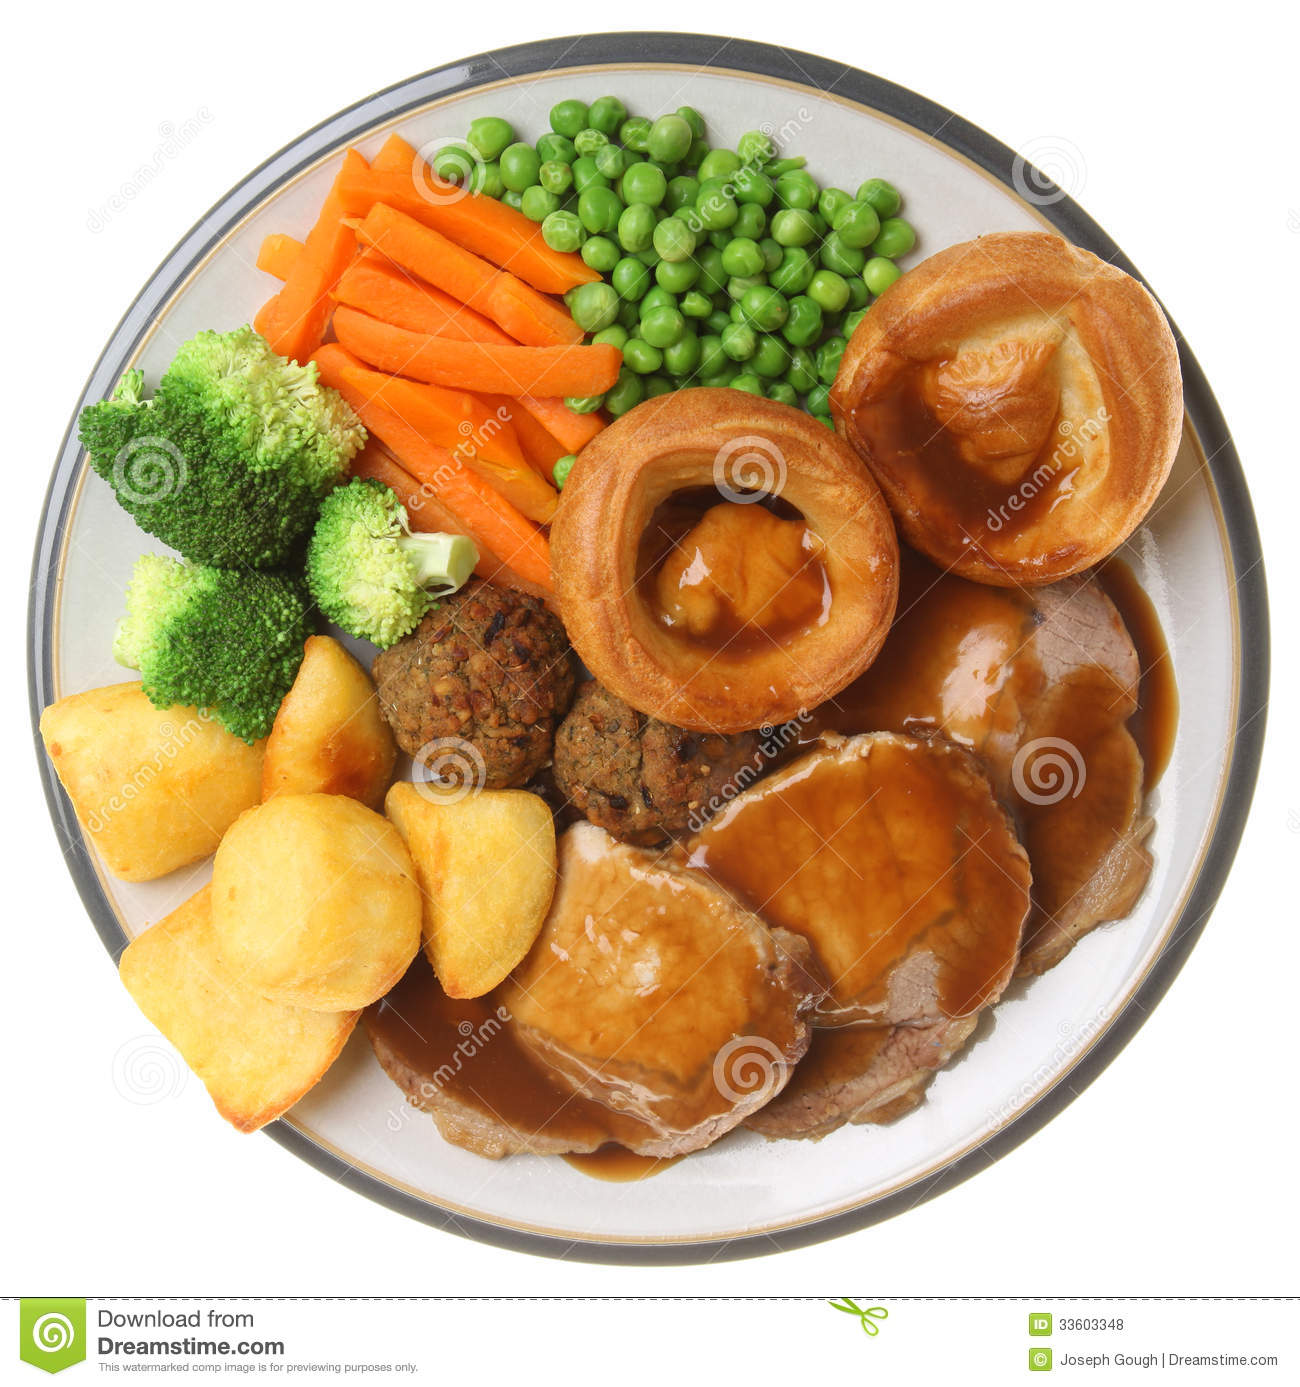 Roast dinner clipart.